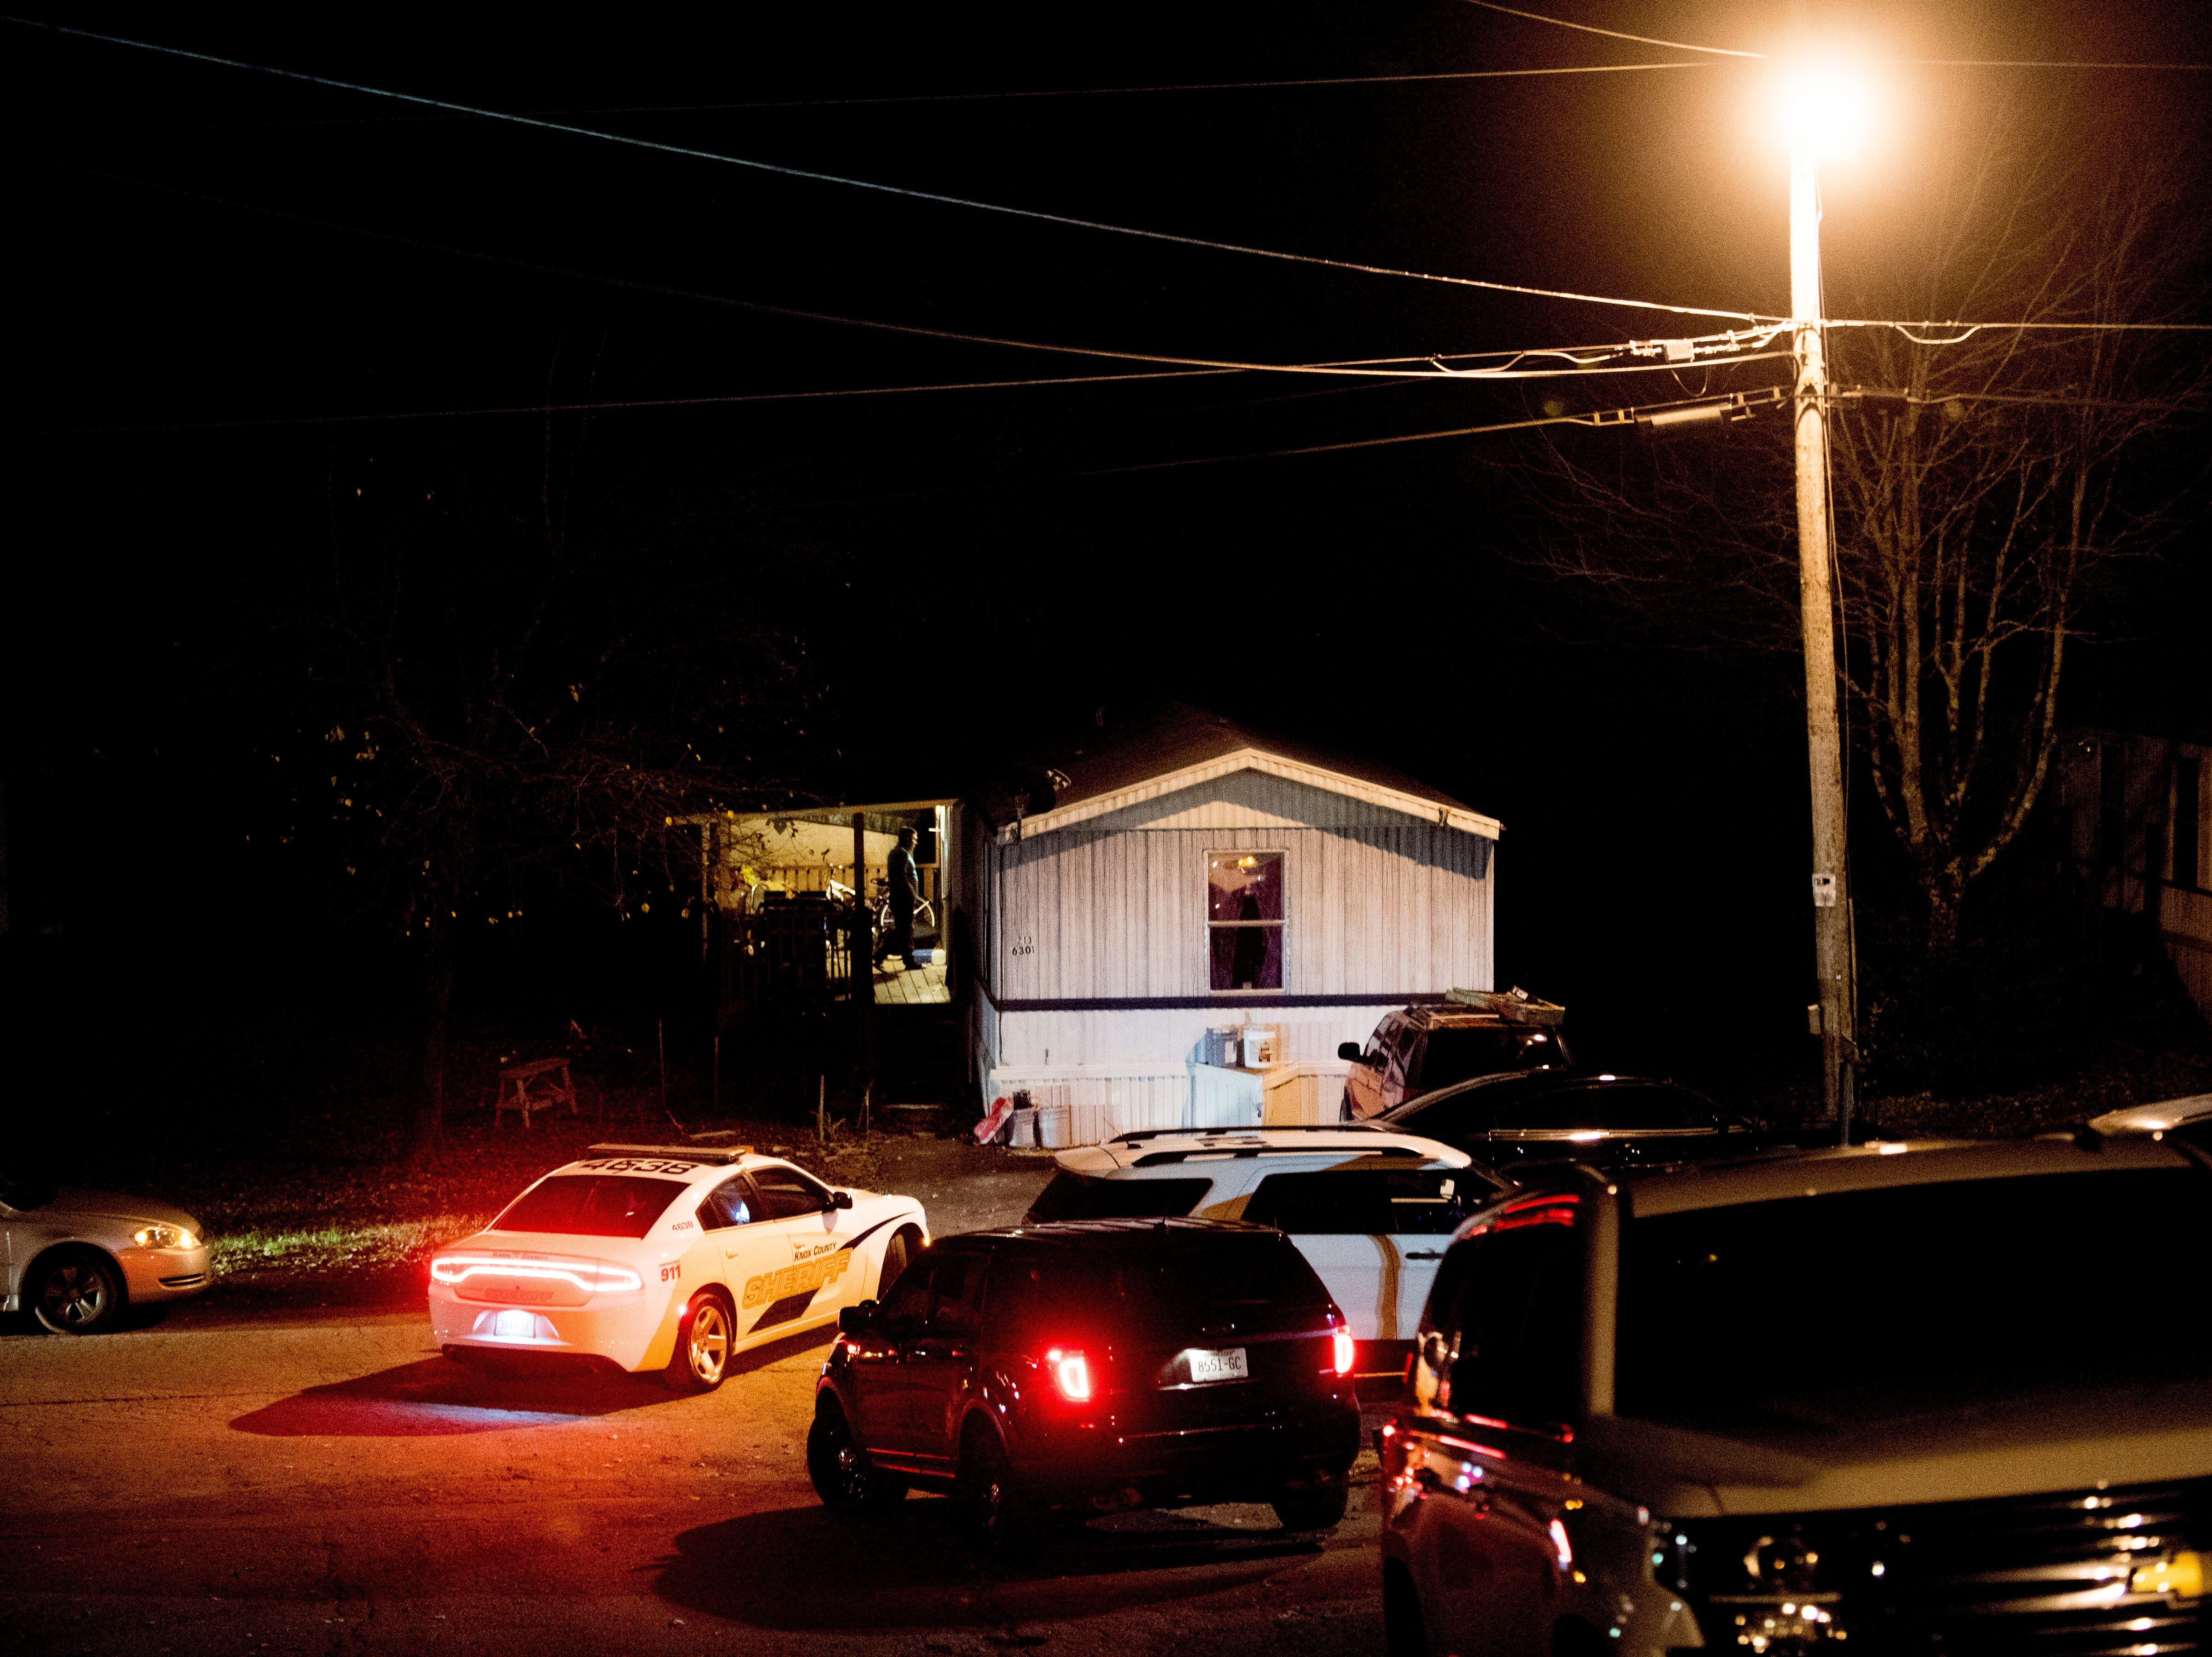 Knox County Sheriff's vehicles at the scene of a shooting on Forest Edge Way in Knoxville, Tennessee on Saturday, November 10, 2018. One victim was confirmed dead at the scene and a second injured.